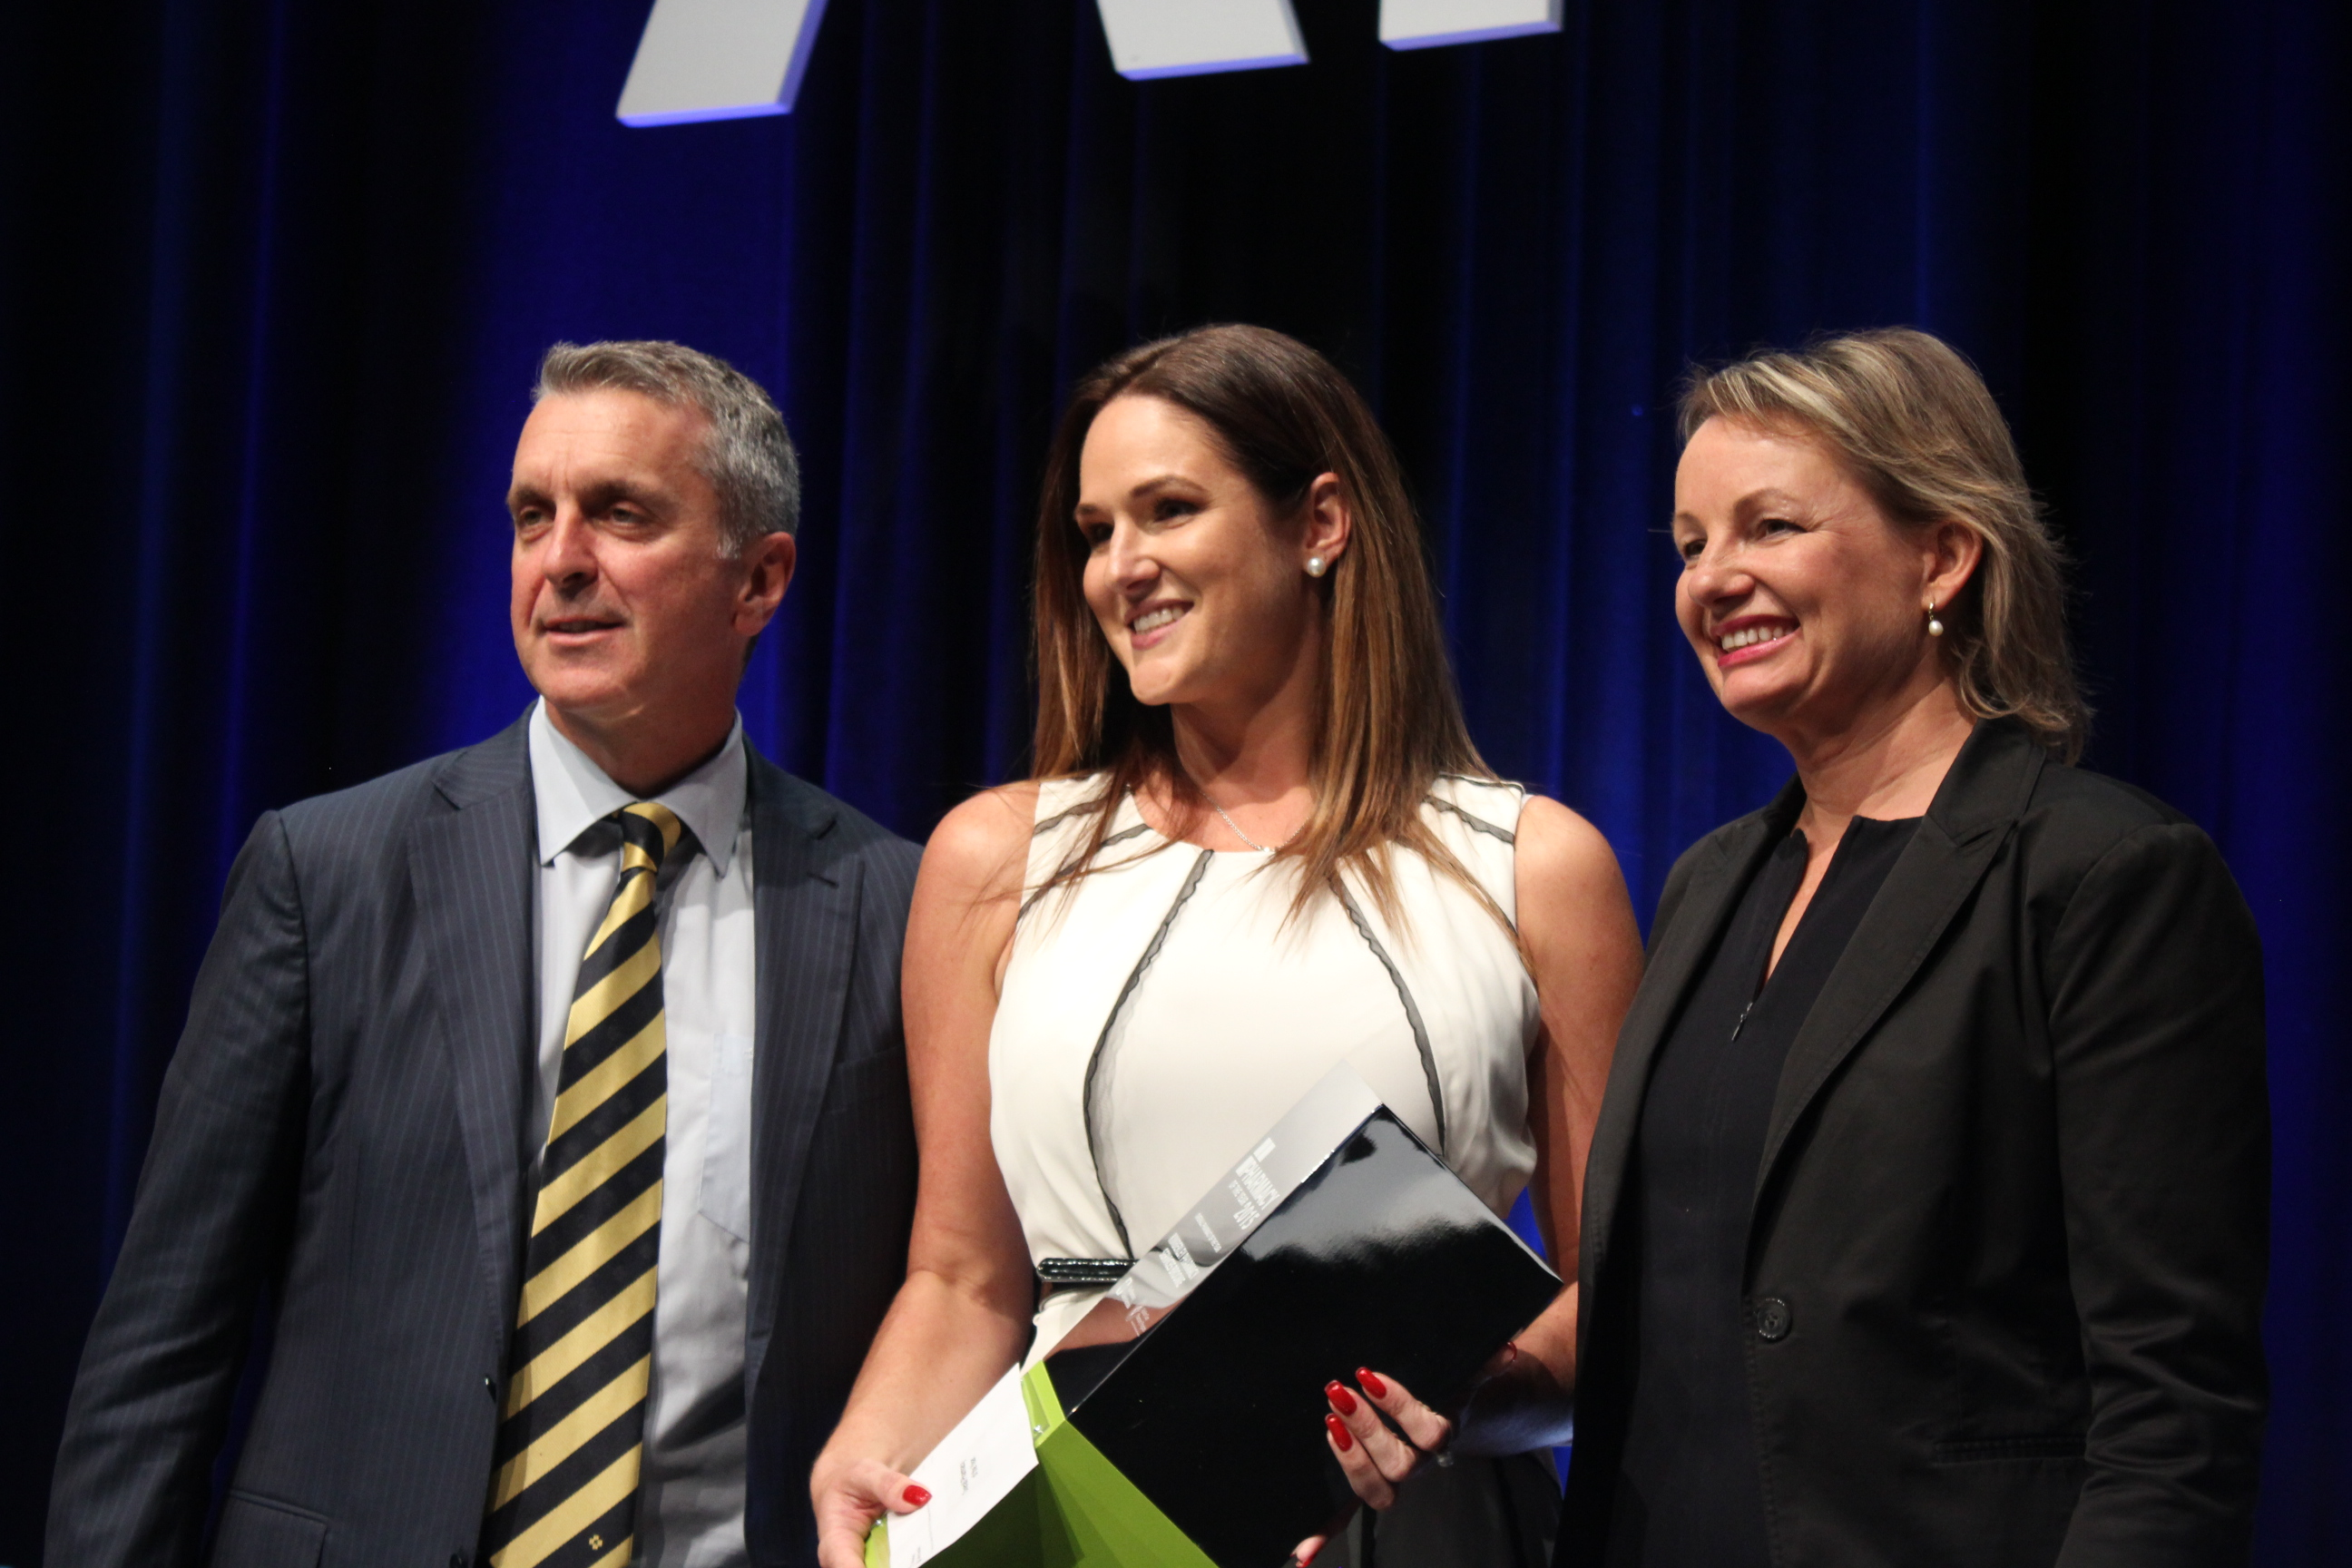 George Tambassis, Hannah Mann and Health Minister Sussan Ley